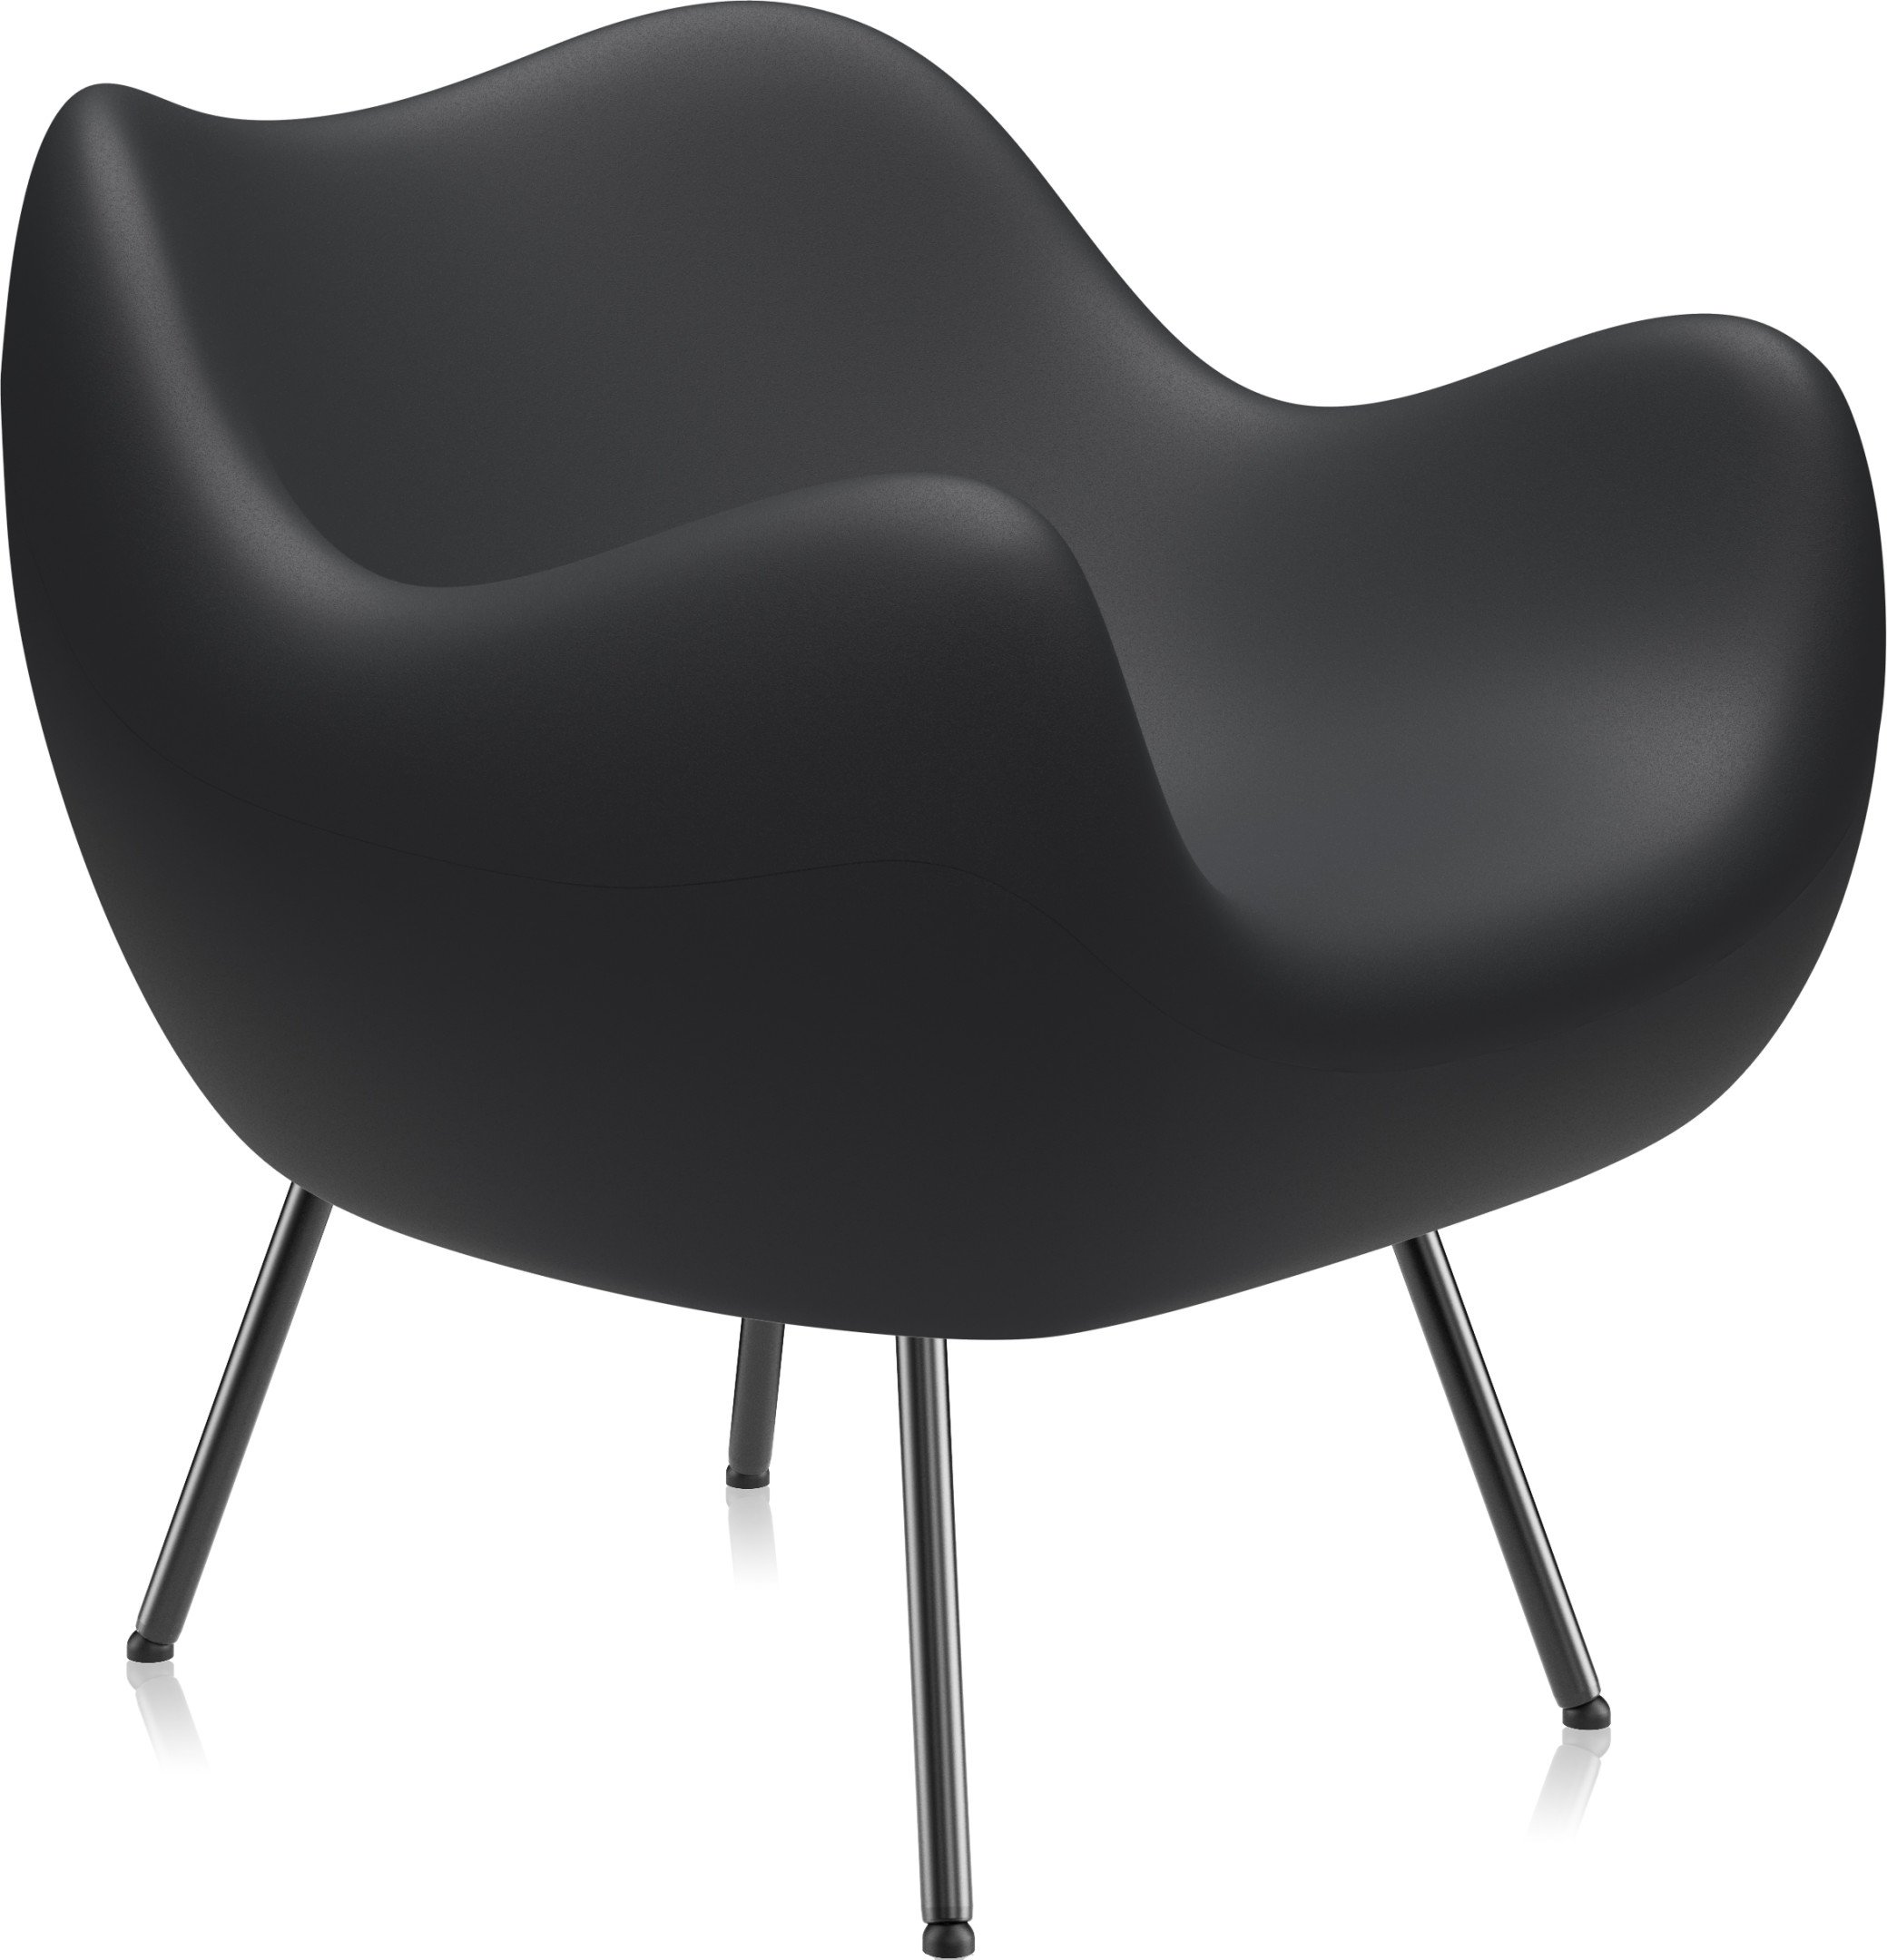 RM58 Armchair Matte Black by R. Modzelewski for VZÓR, 1950s